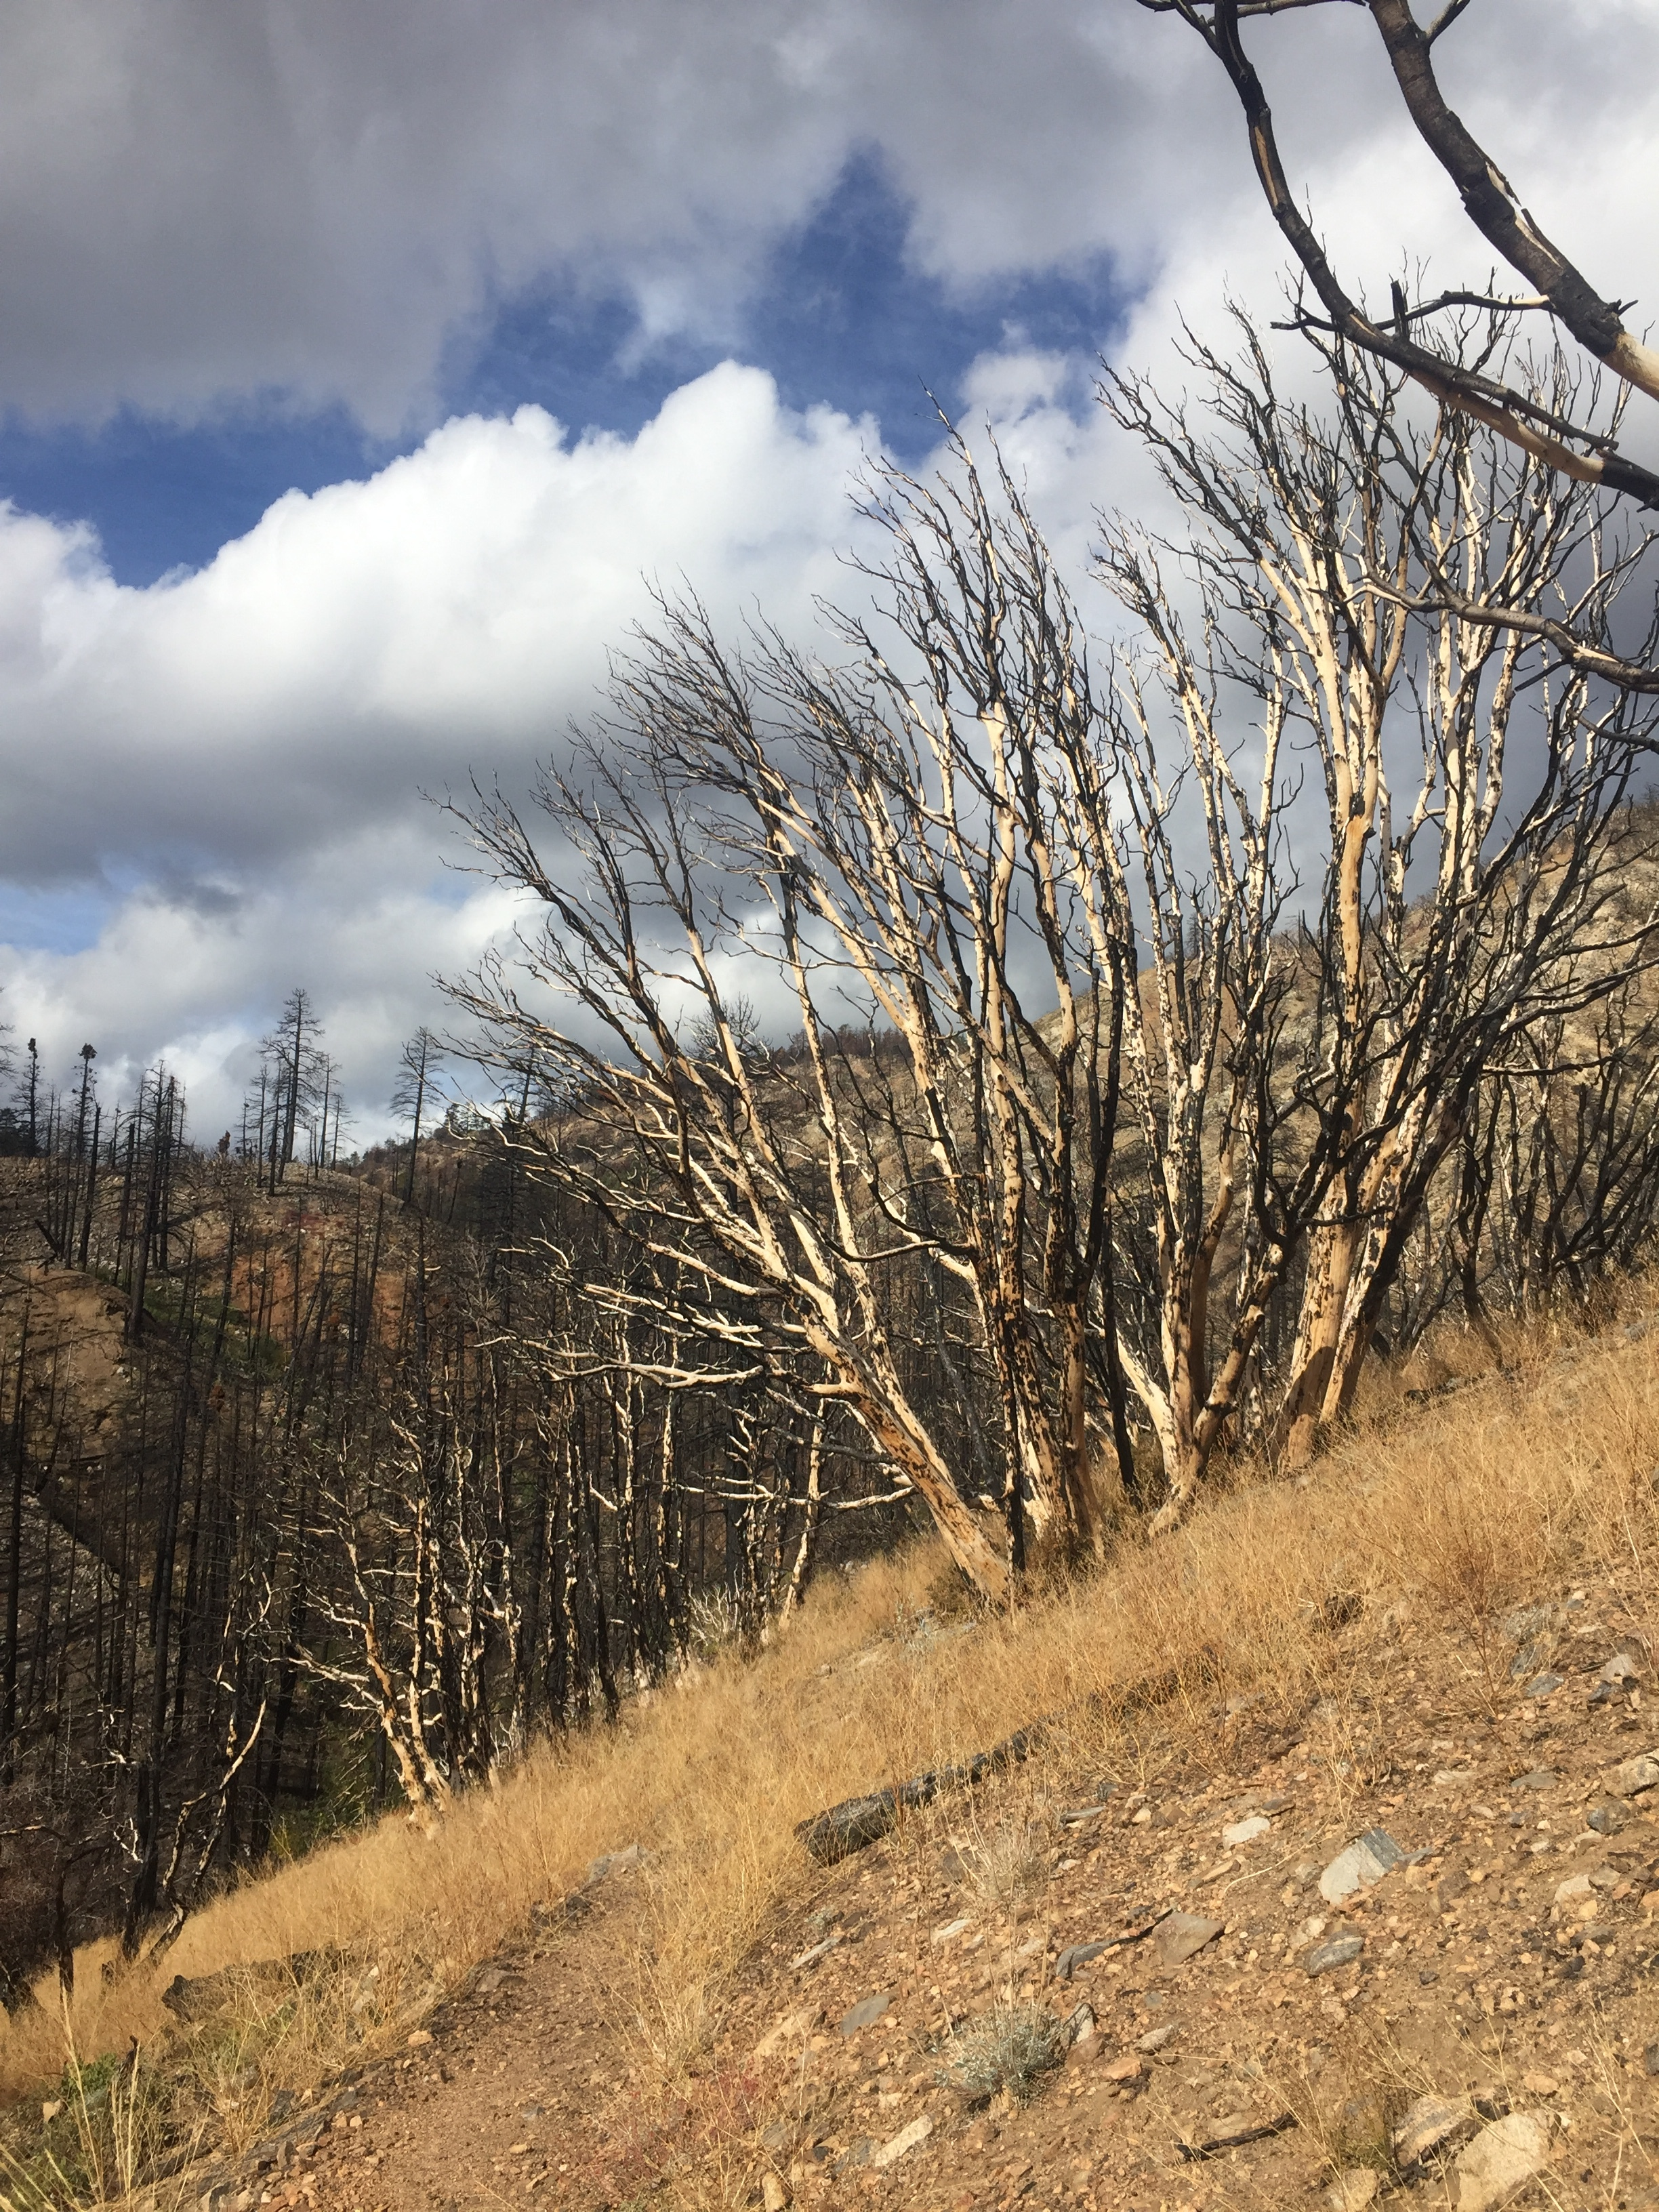 More severe destruction from the Lake Fire in the upper Mission Creek drainage